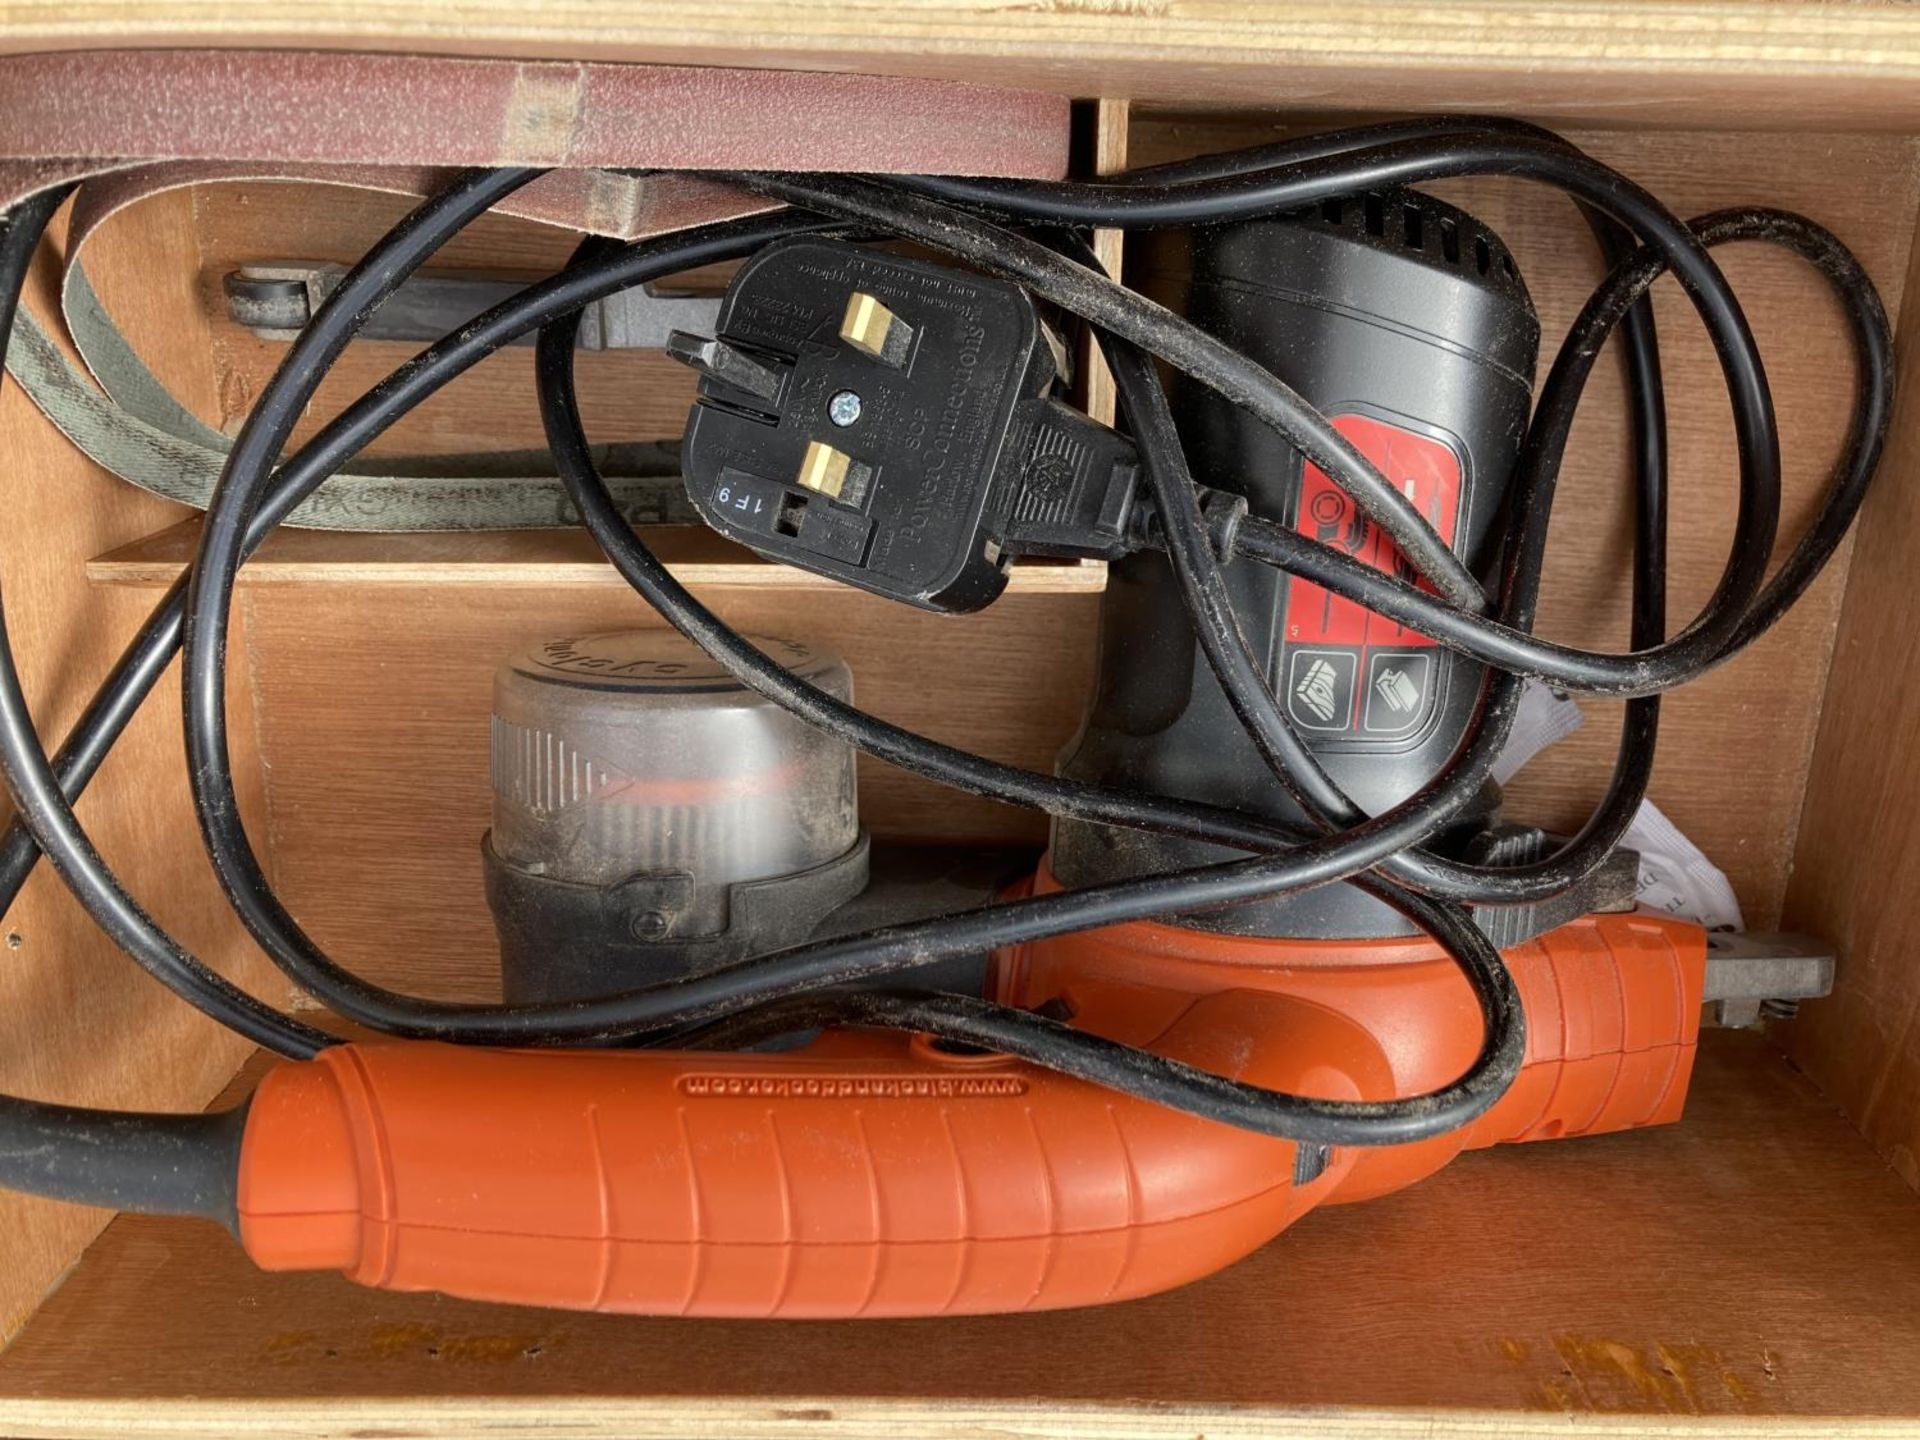 THREE ITEMS TO INCLUDE A MILESCRAFT PANTOGRAPH PRO, BLACK AND DECKER SANDER AND A WOODCUT BOWL CORER - Image 2 of 4